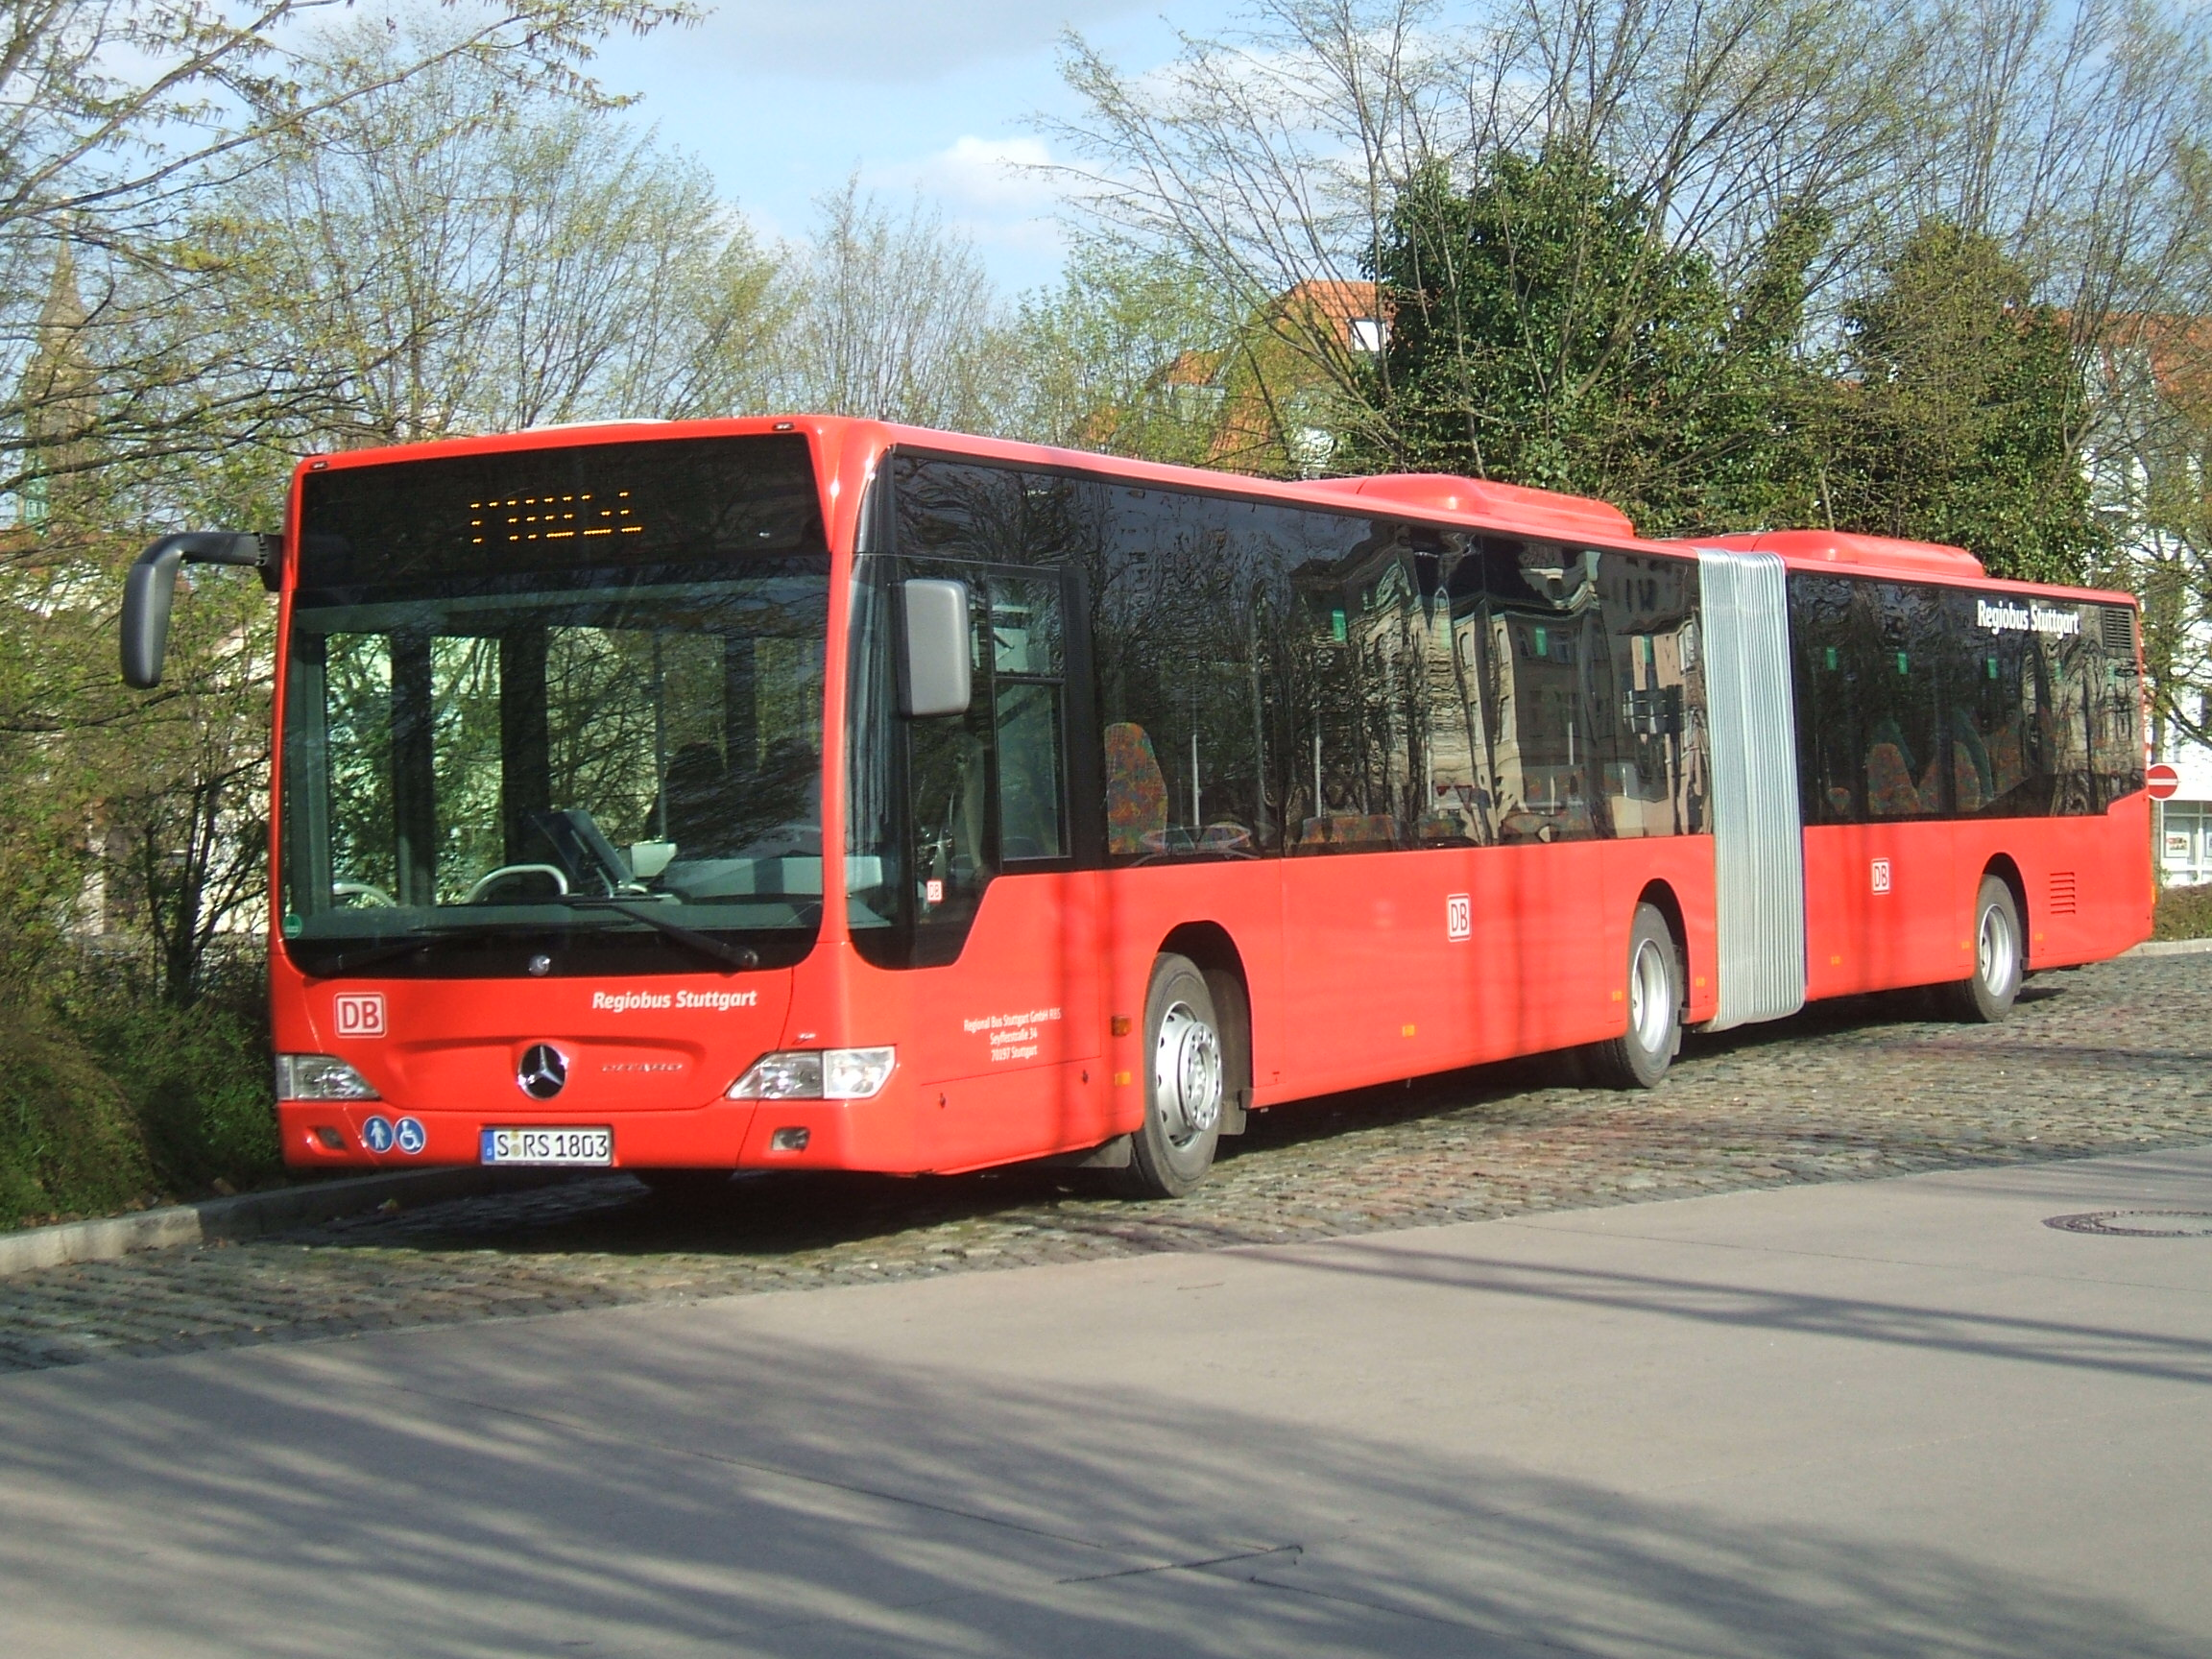 File:MB Citaro G 2 - RBS jpg - Wikimedia Commons